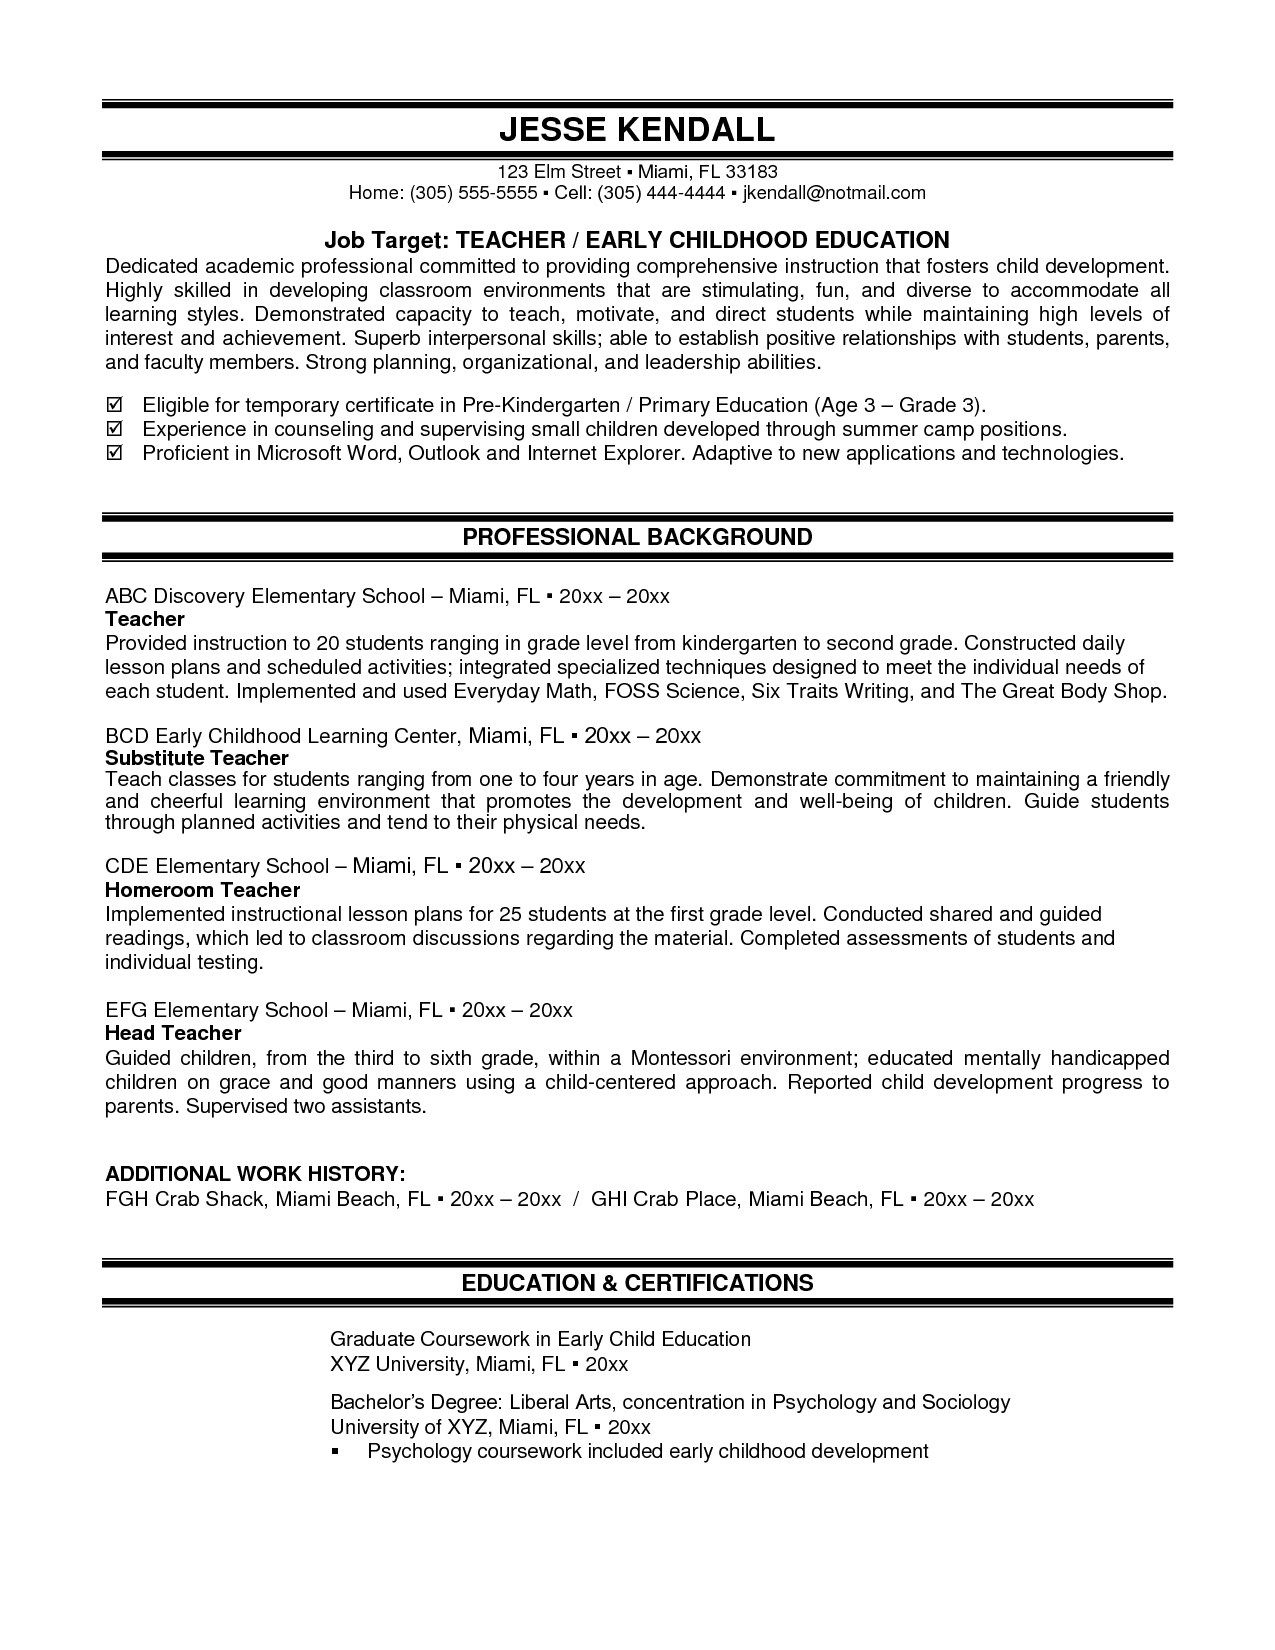 Teacher Resume Samples Private Music Teacher Resume Sample  Httpersumeprivate